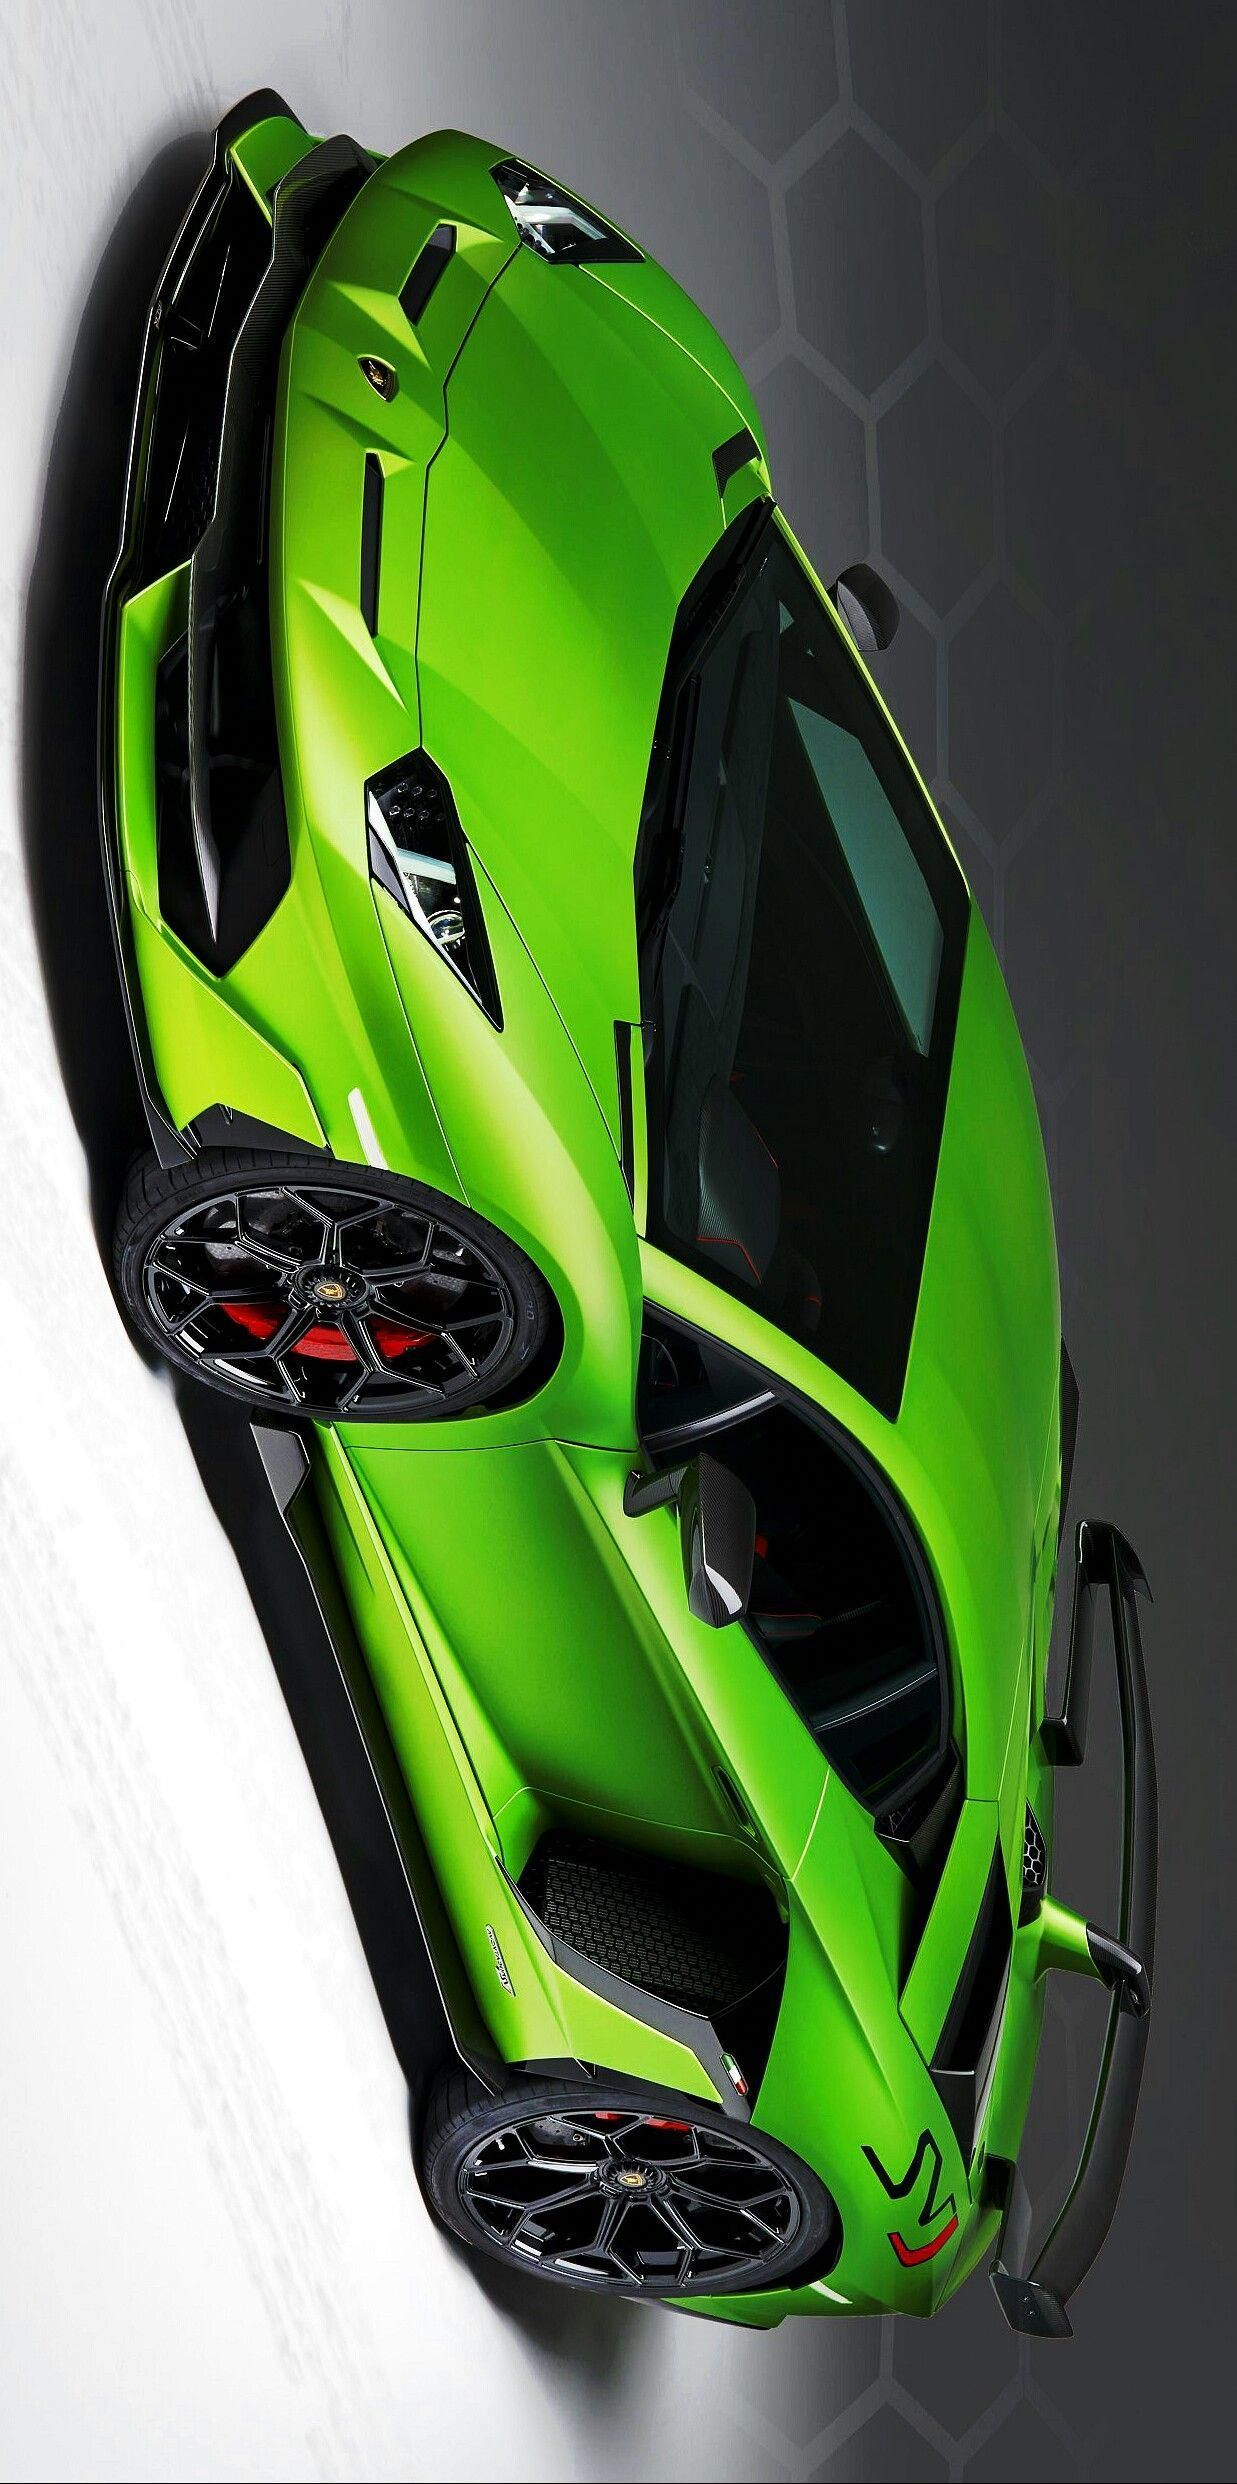 Green Cool Cars It Goes Quick It May Be Customized To Go Also Much Faster Its Engine Can Be Anticipated Expensive Sports Cars Lamborghini Cars Lamborghini